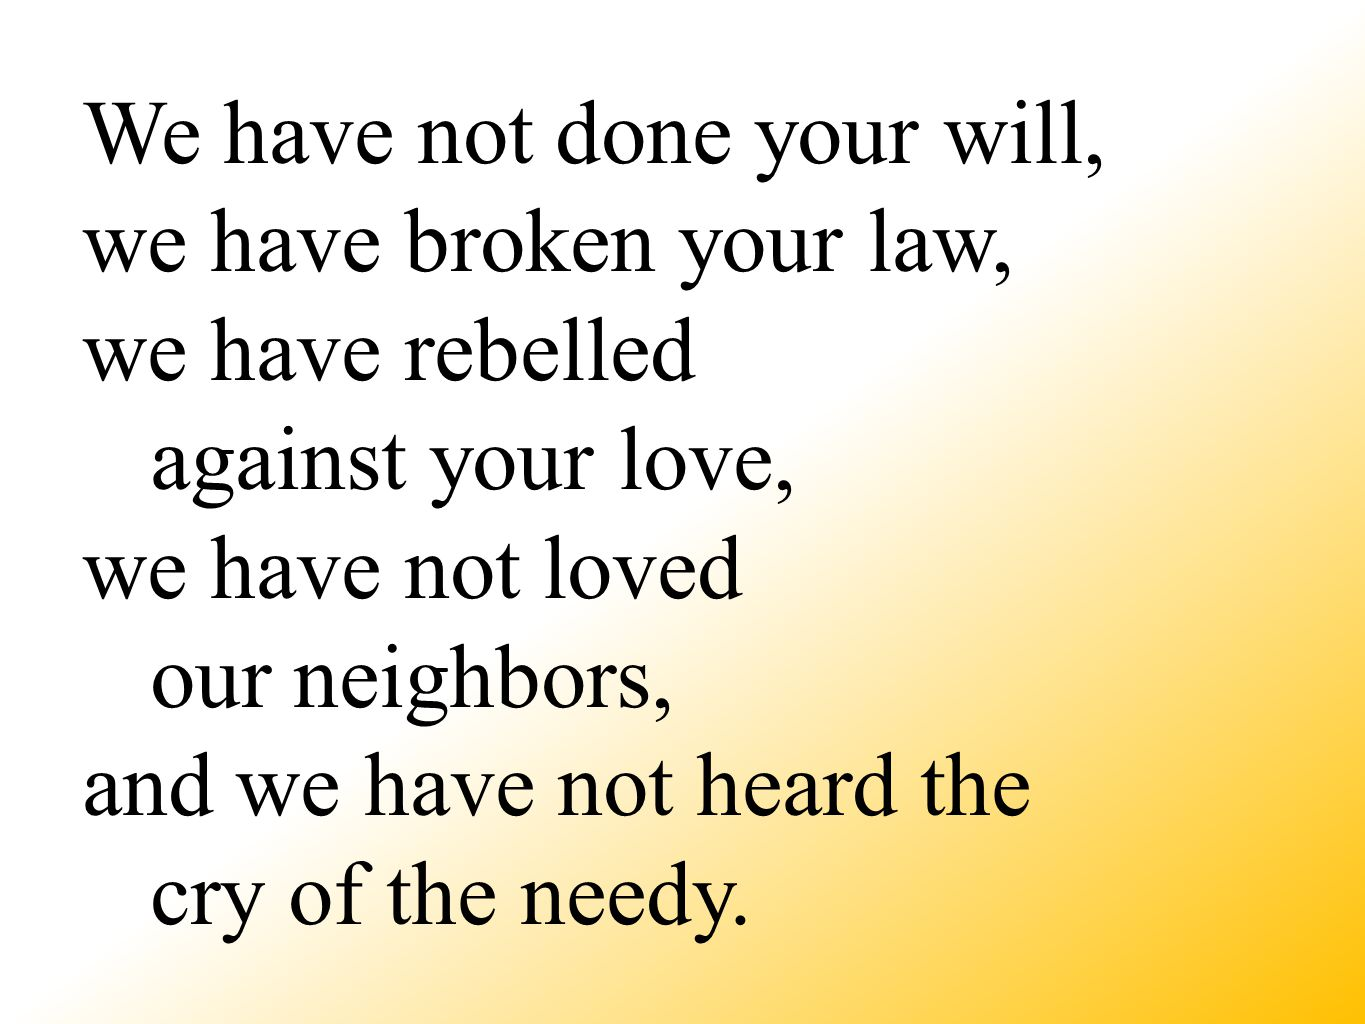 We have not done your will, we have broken your law, we have rebelled against your love, we have not loved our neighbors, and we have not heard the cry of the needy.